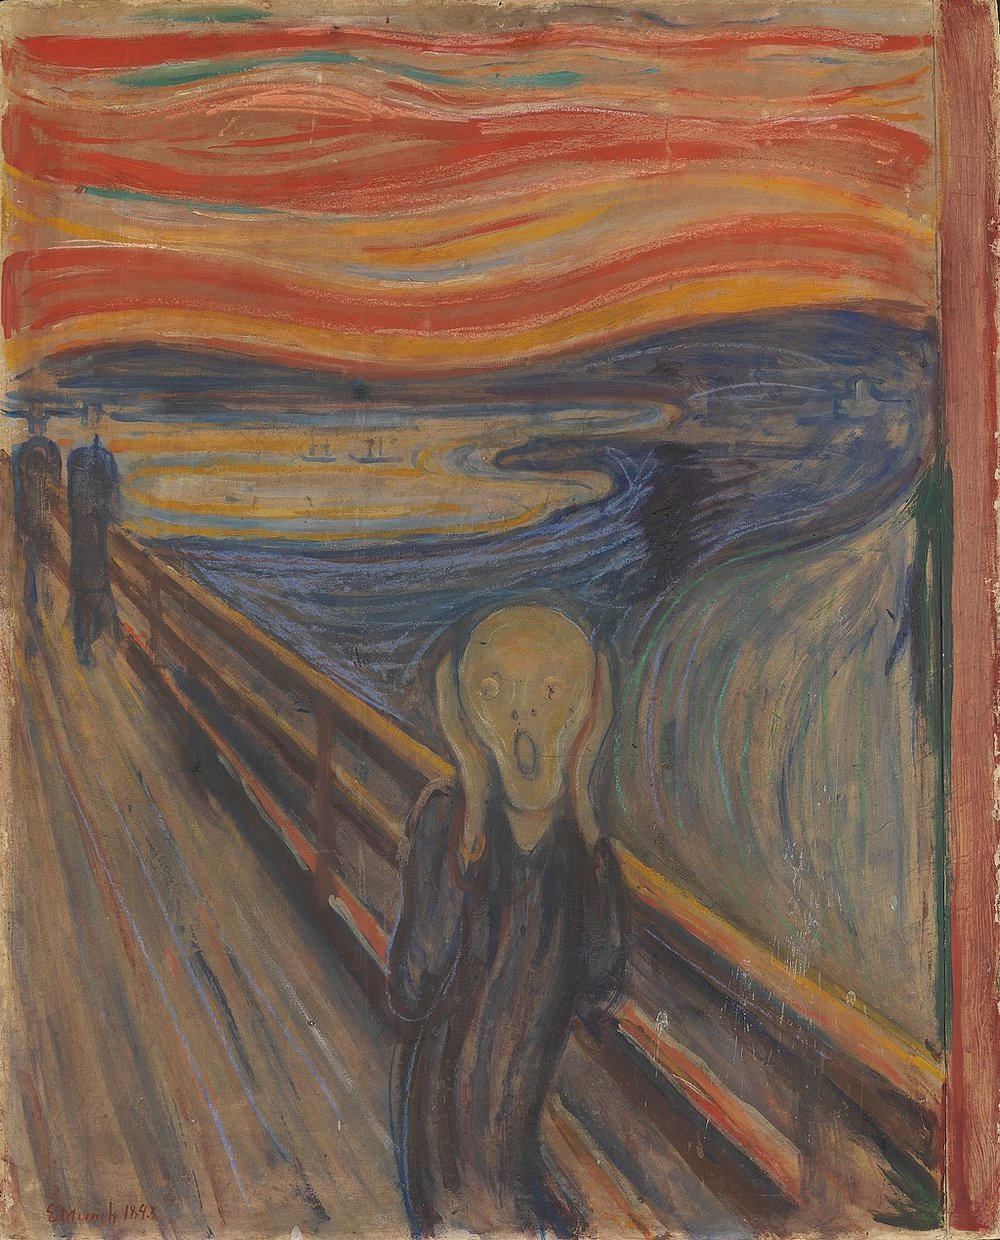 Edvard Munch The Scream 1893, oil, tempera, pastel and crayon cardboard